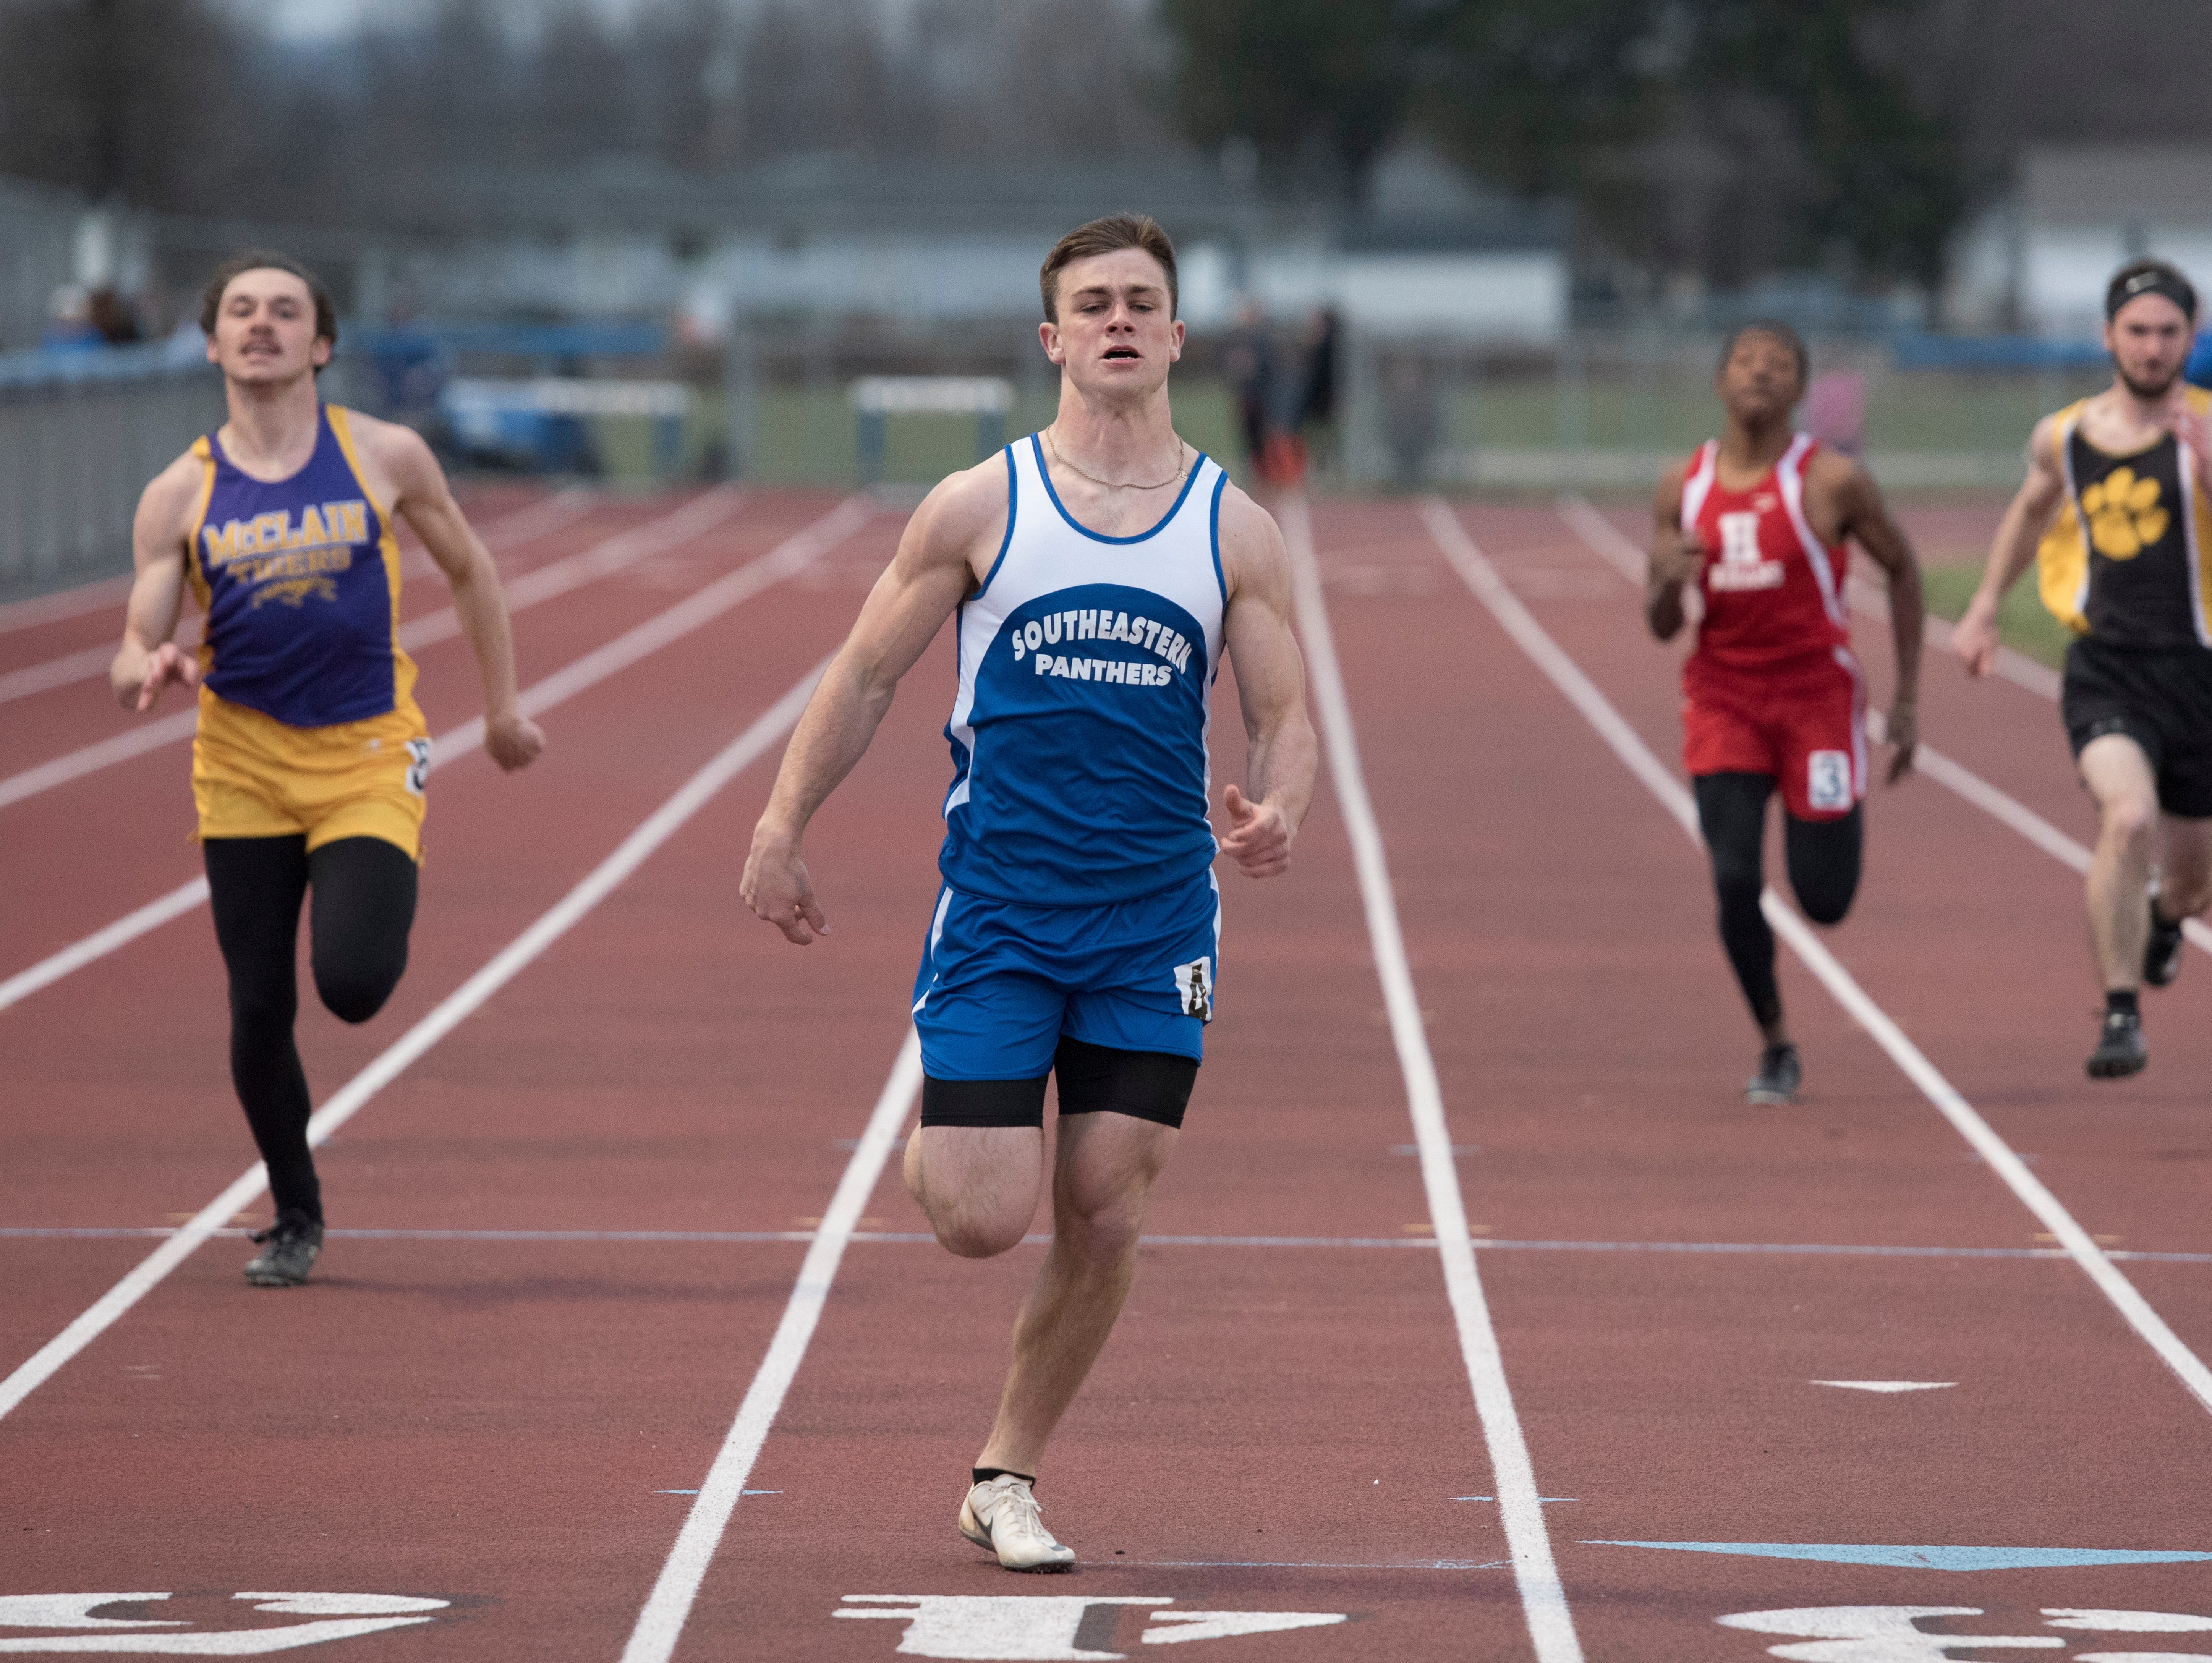 Southeastern's Lane Ruby took first place Thursday afternoon in the boys' 200 meter dash at Southeastern's RL Davisson Invite Thursday afternoon by a time of 22.58.